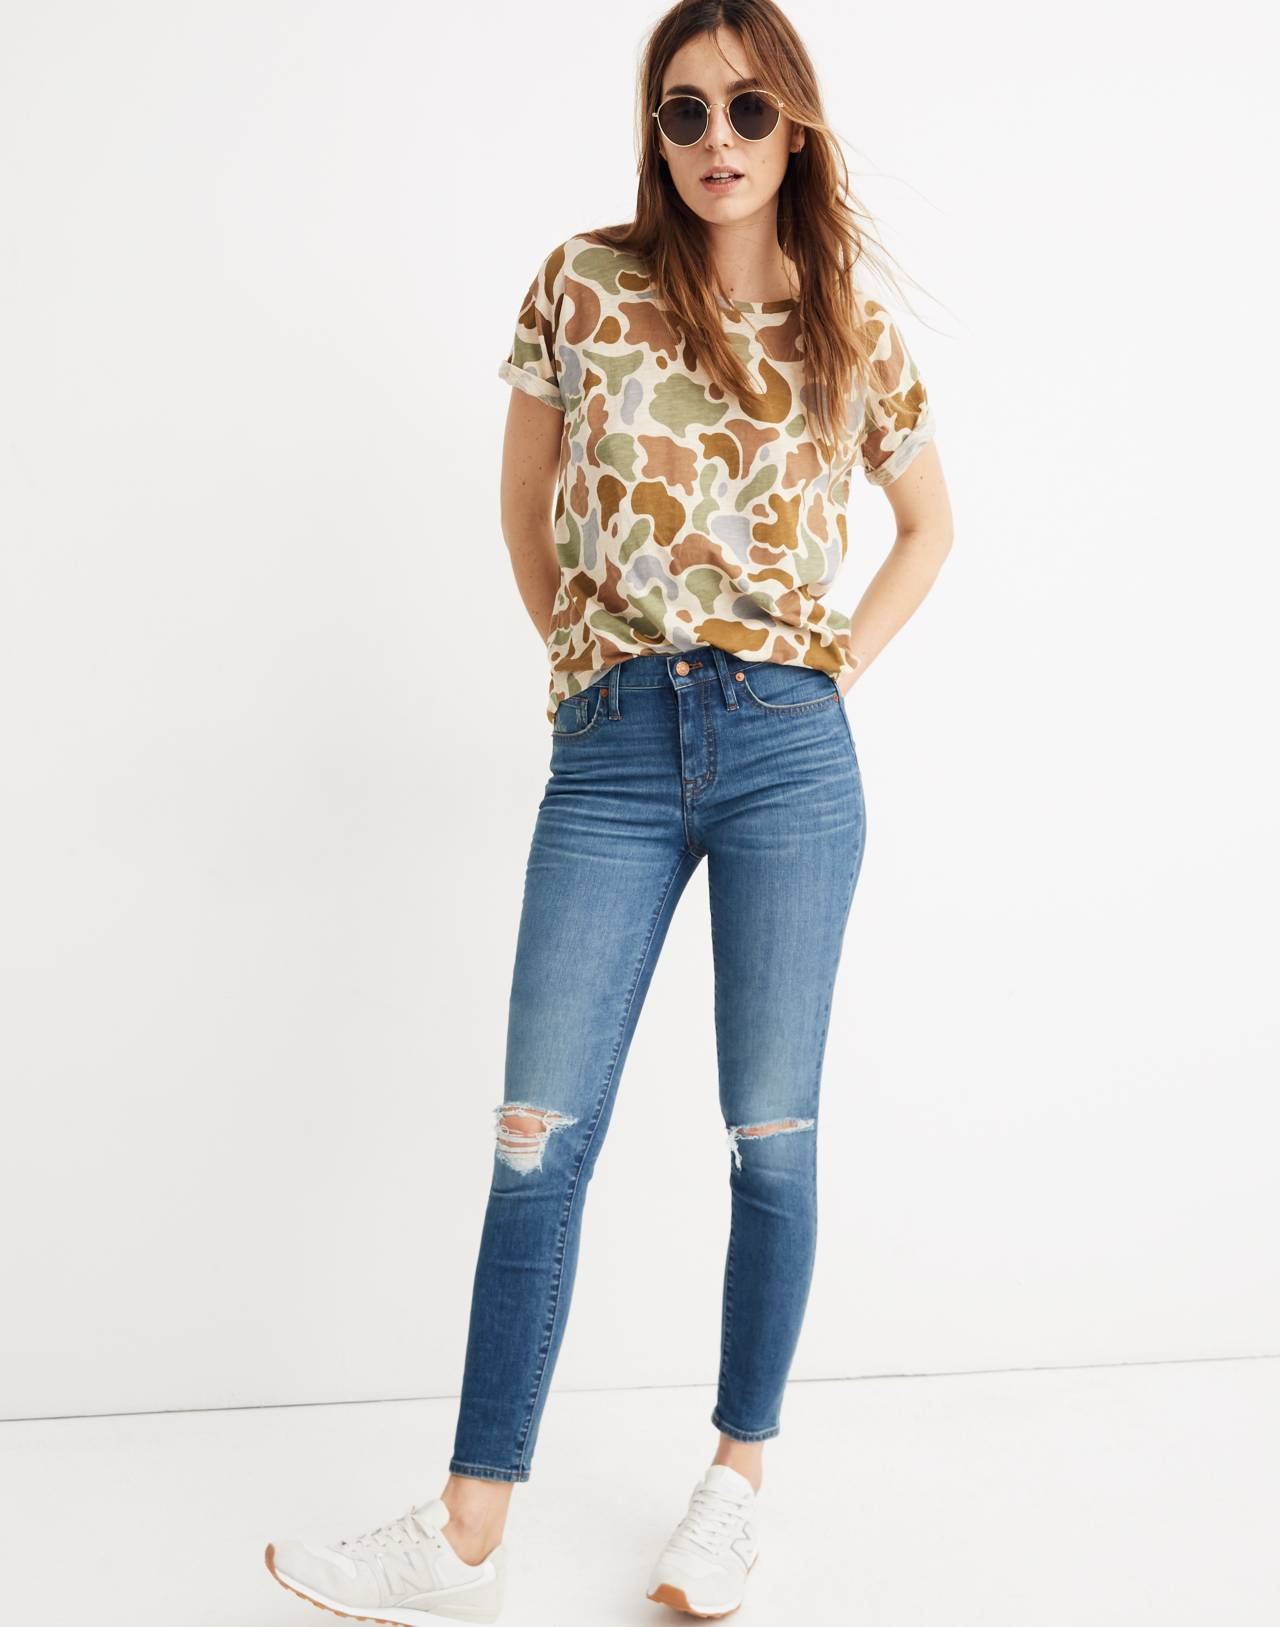 "9"" High-Rise Skinny Crop Jeans in Delmar Wash: Eco Edition in delmar wash image 1"